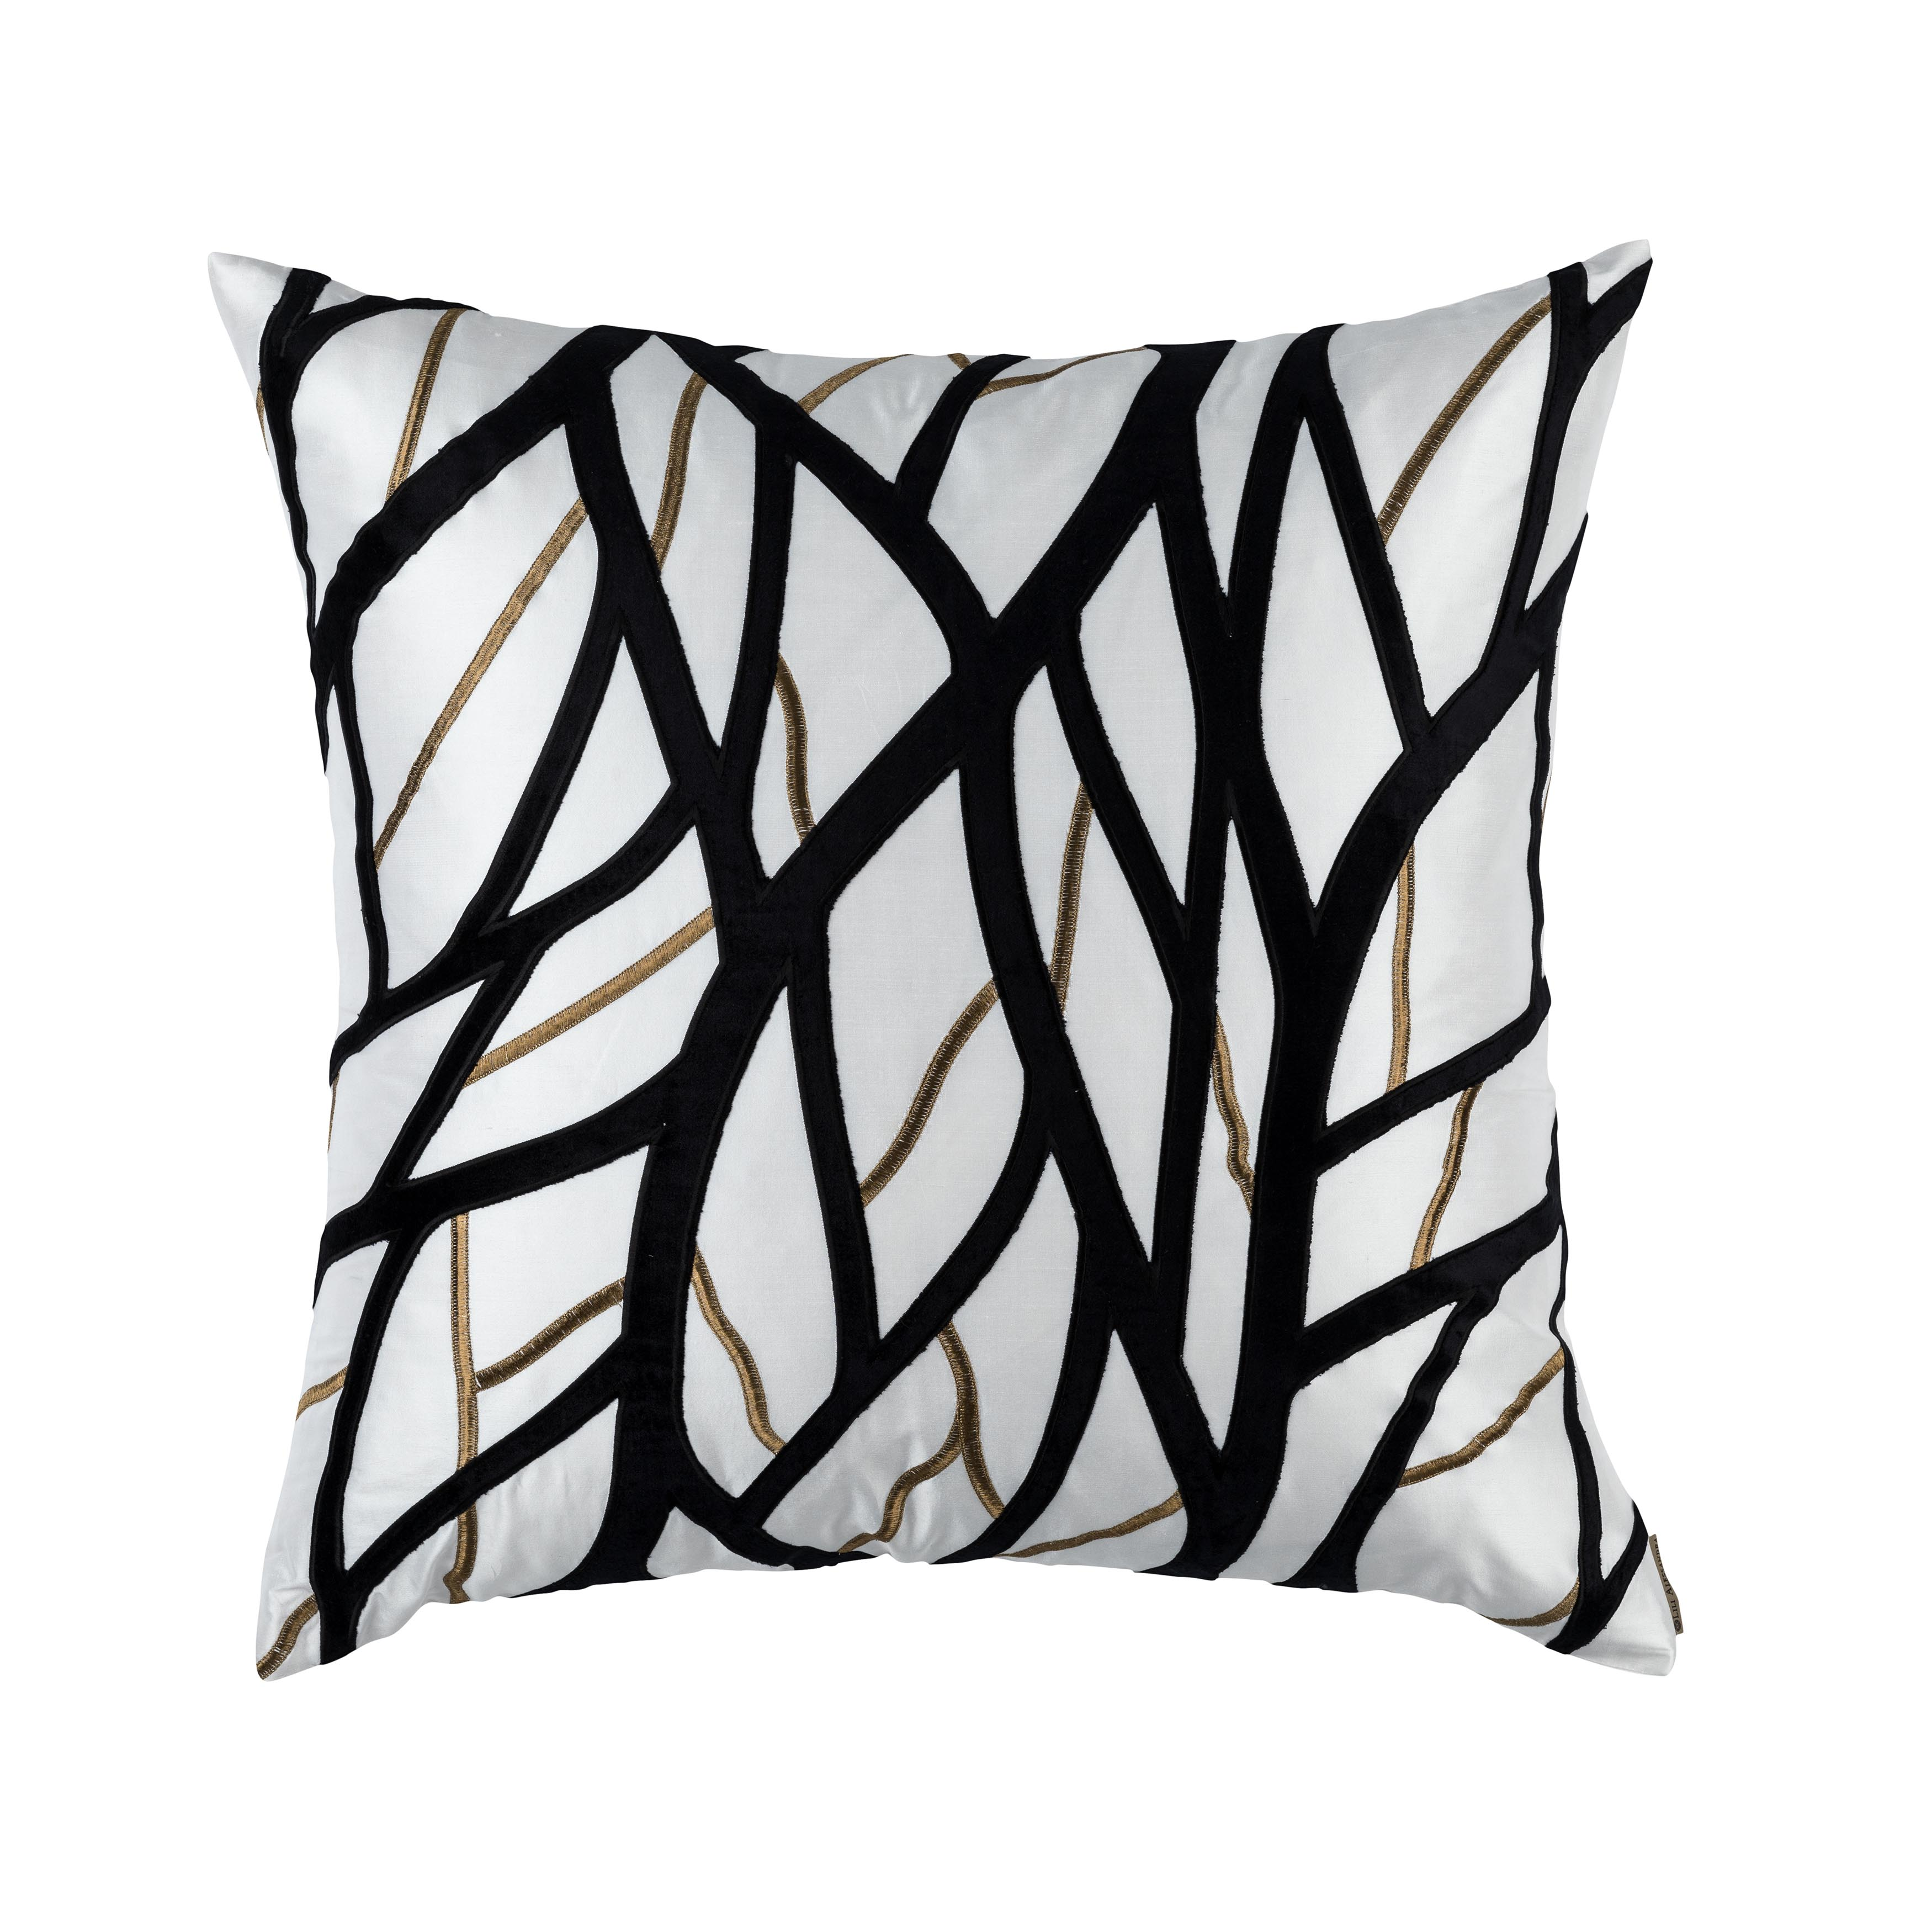 Chloe Ivory/Gold Twig Embroidery Black Velvet Euro Throw Pillow Throw Pillows By Lili Alessandra